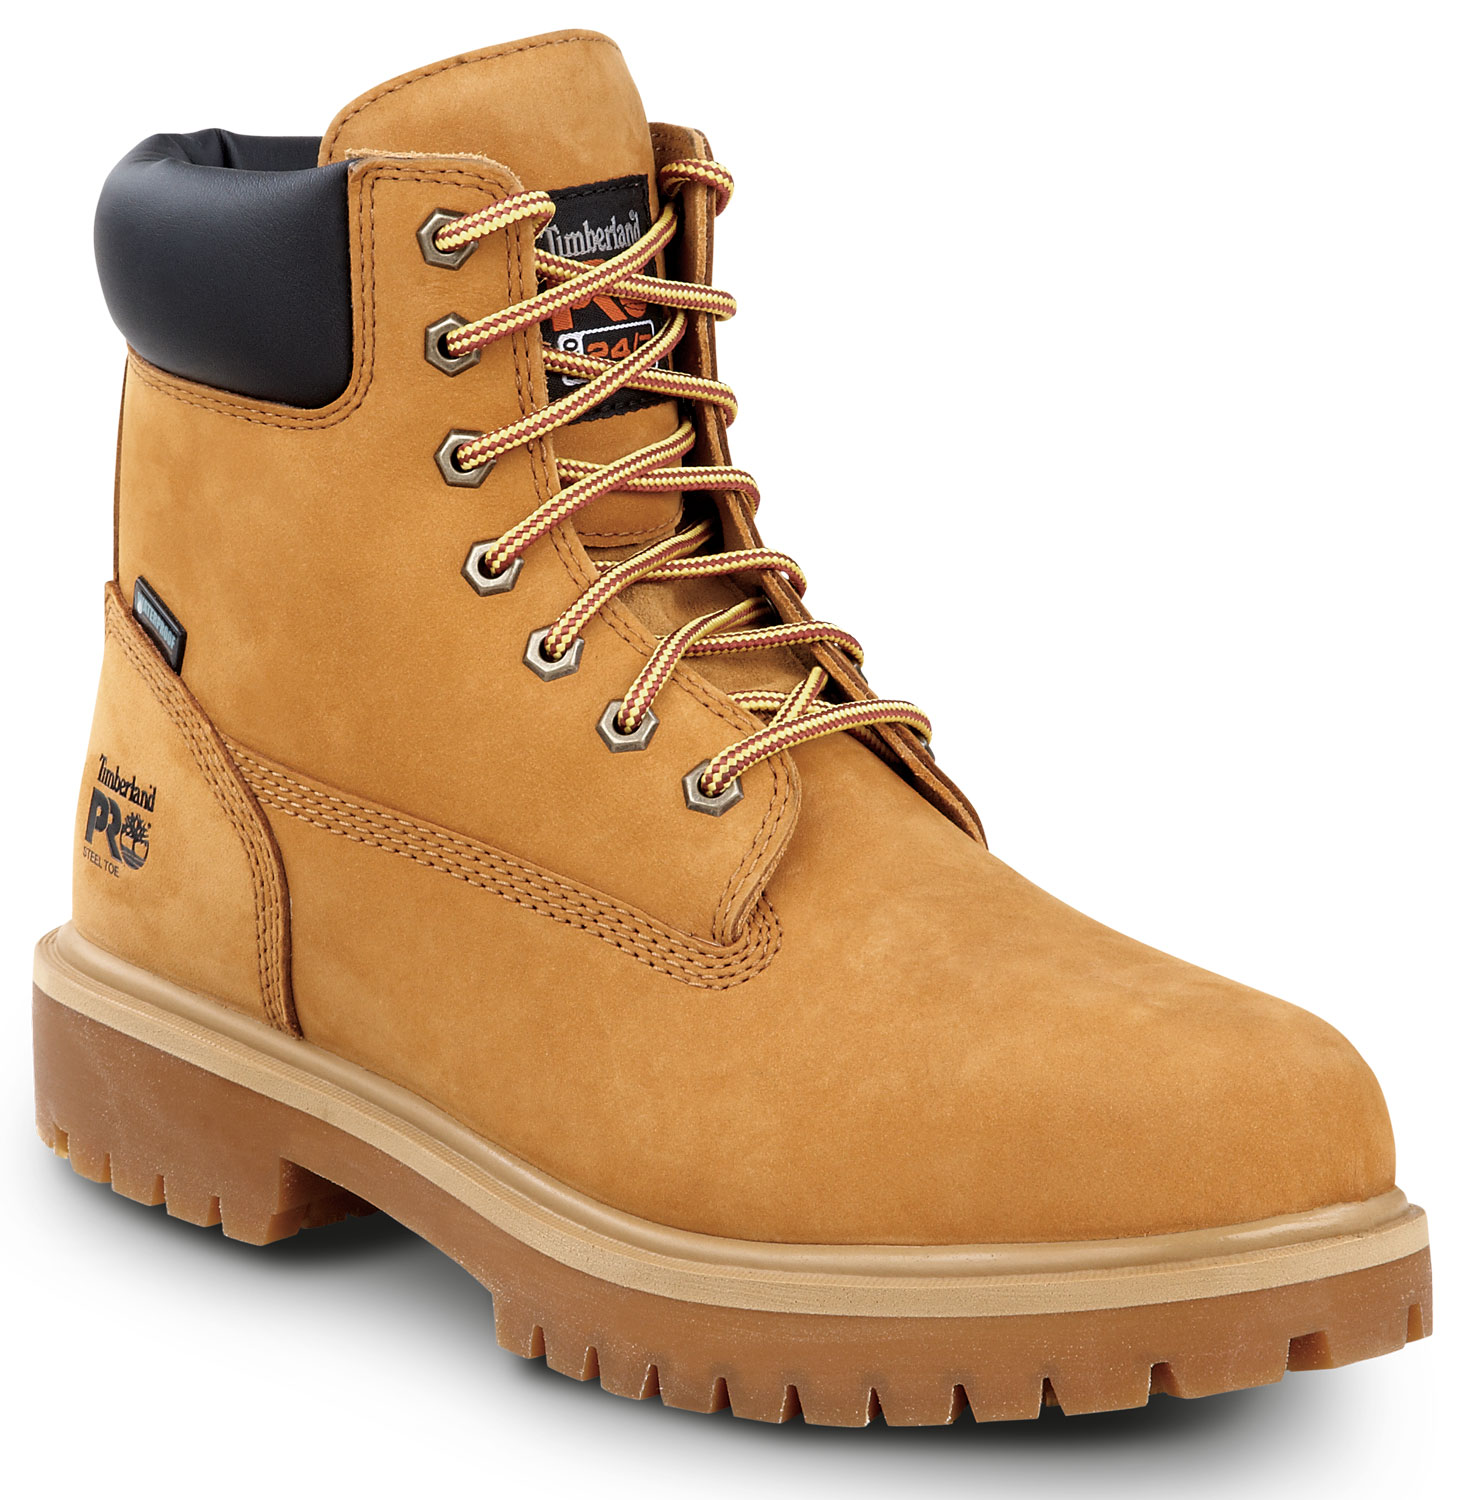 46256459724 Timberland PRO 6IN Direct Attach Men's Steel Toe Boot